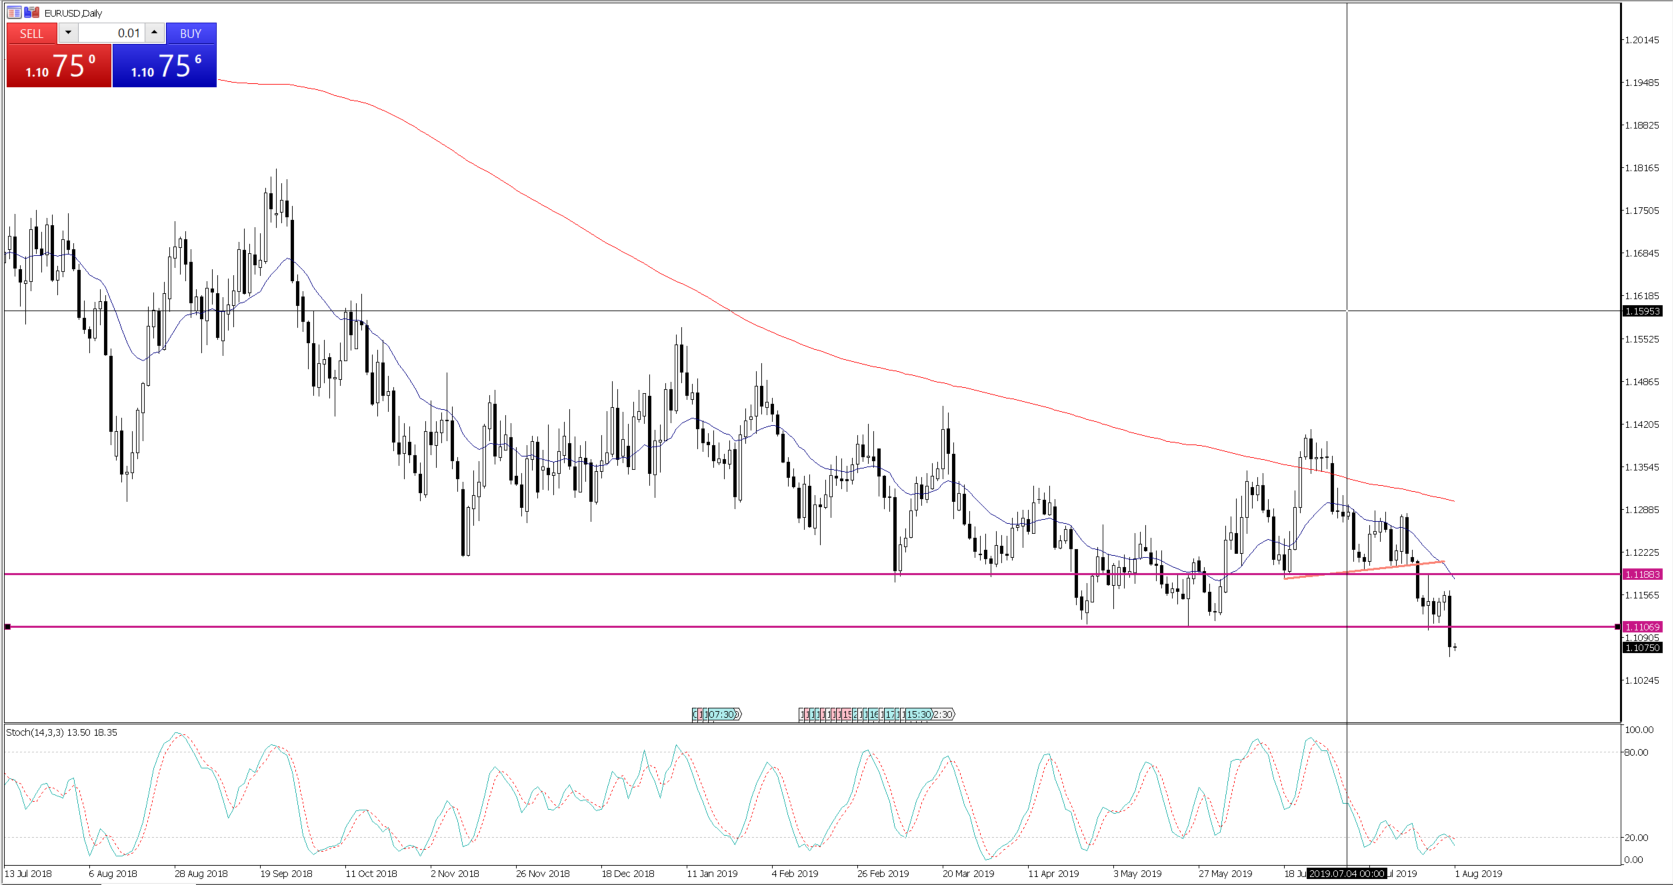 Daily Fix - Aug 1, 2019 - EURUSD daily